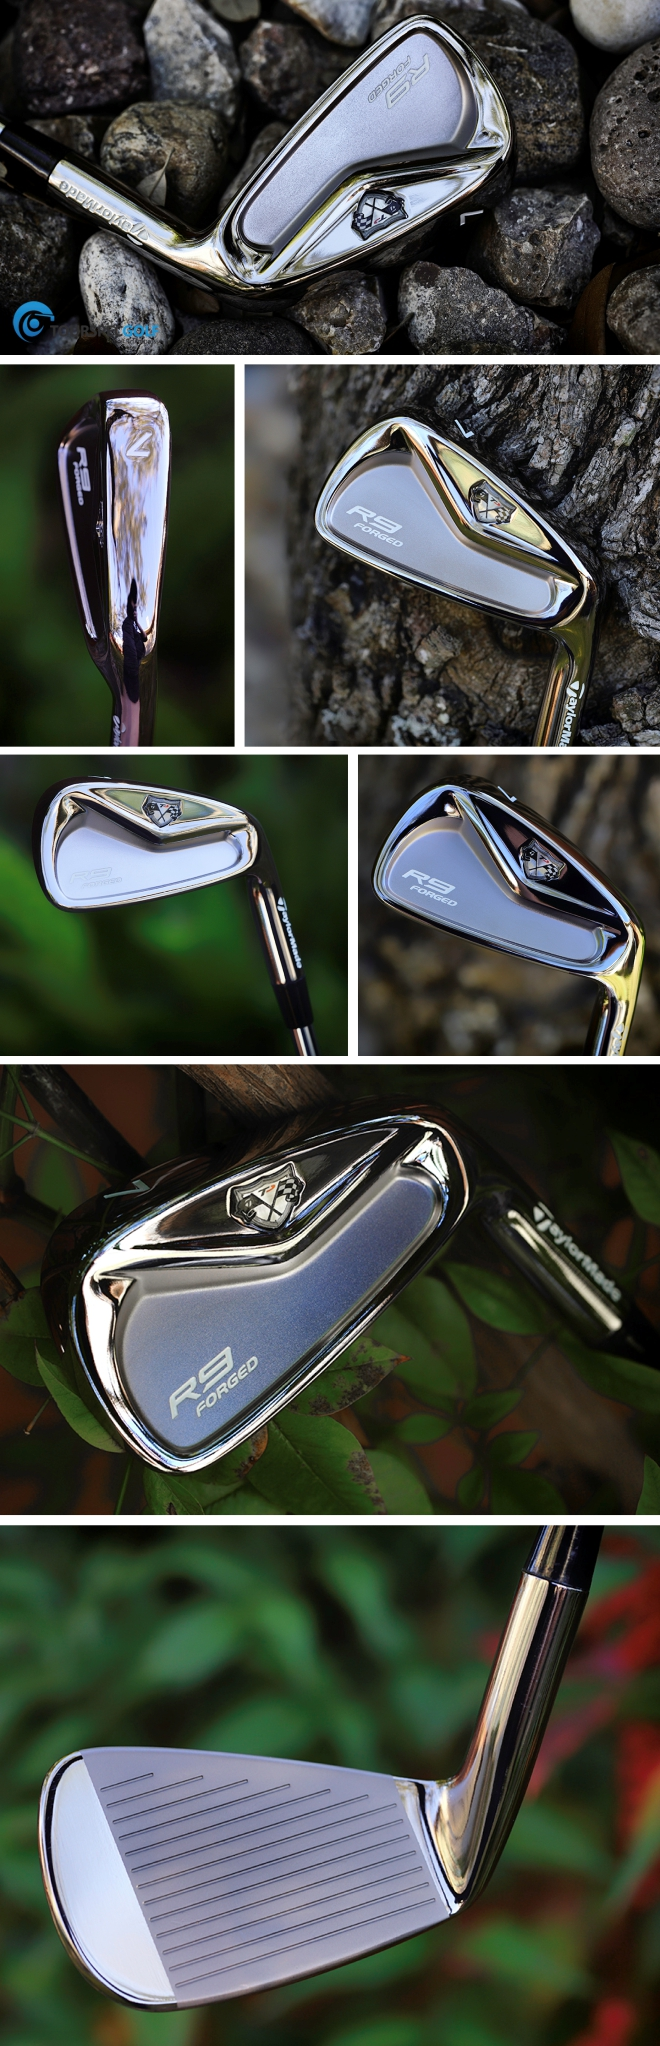 Taylormade R9 TP Forged Iron Black Mirror Finish by TSG Club Works